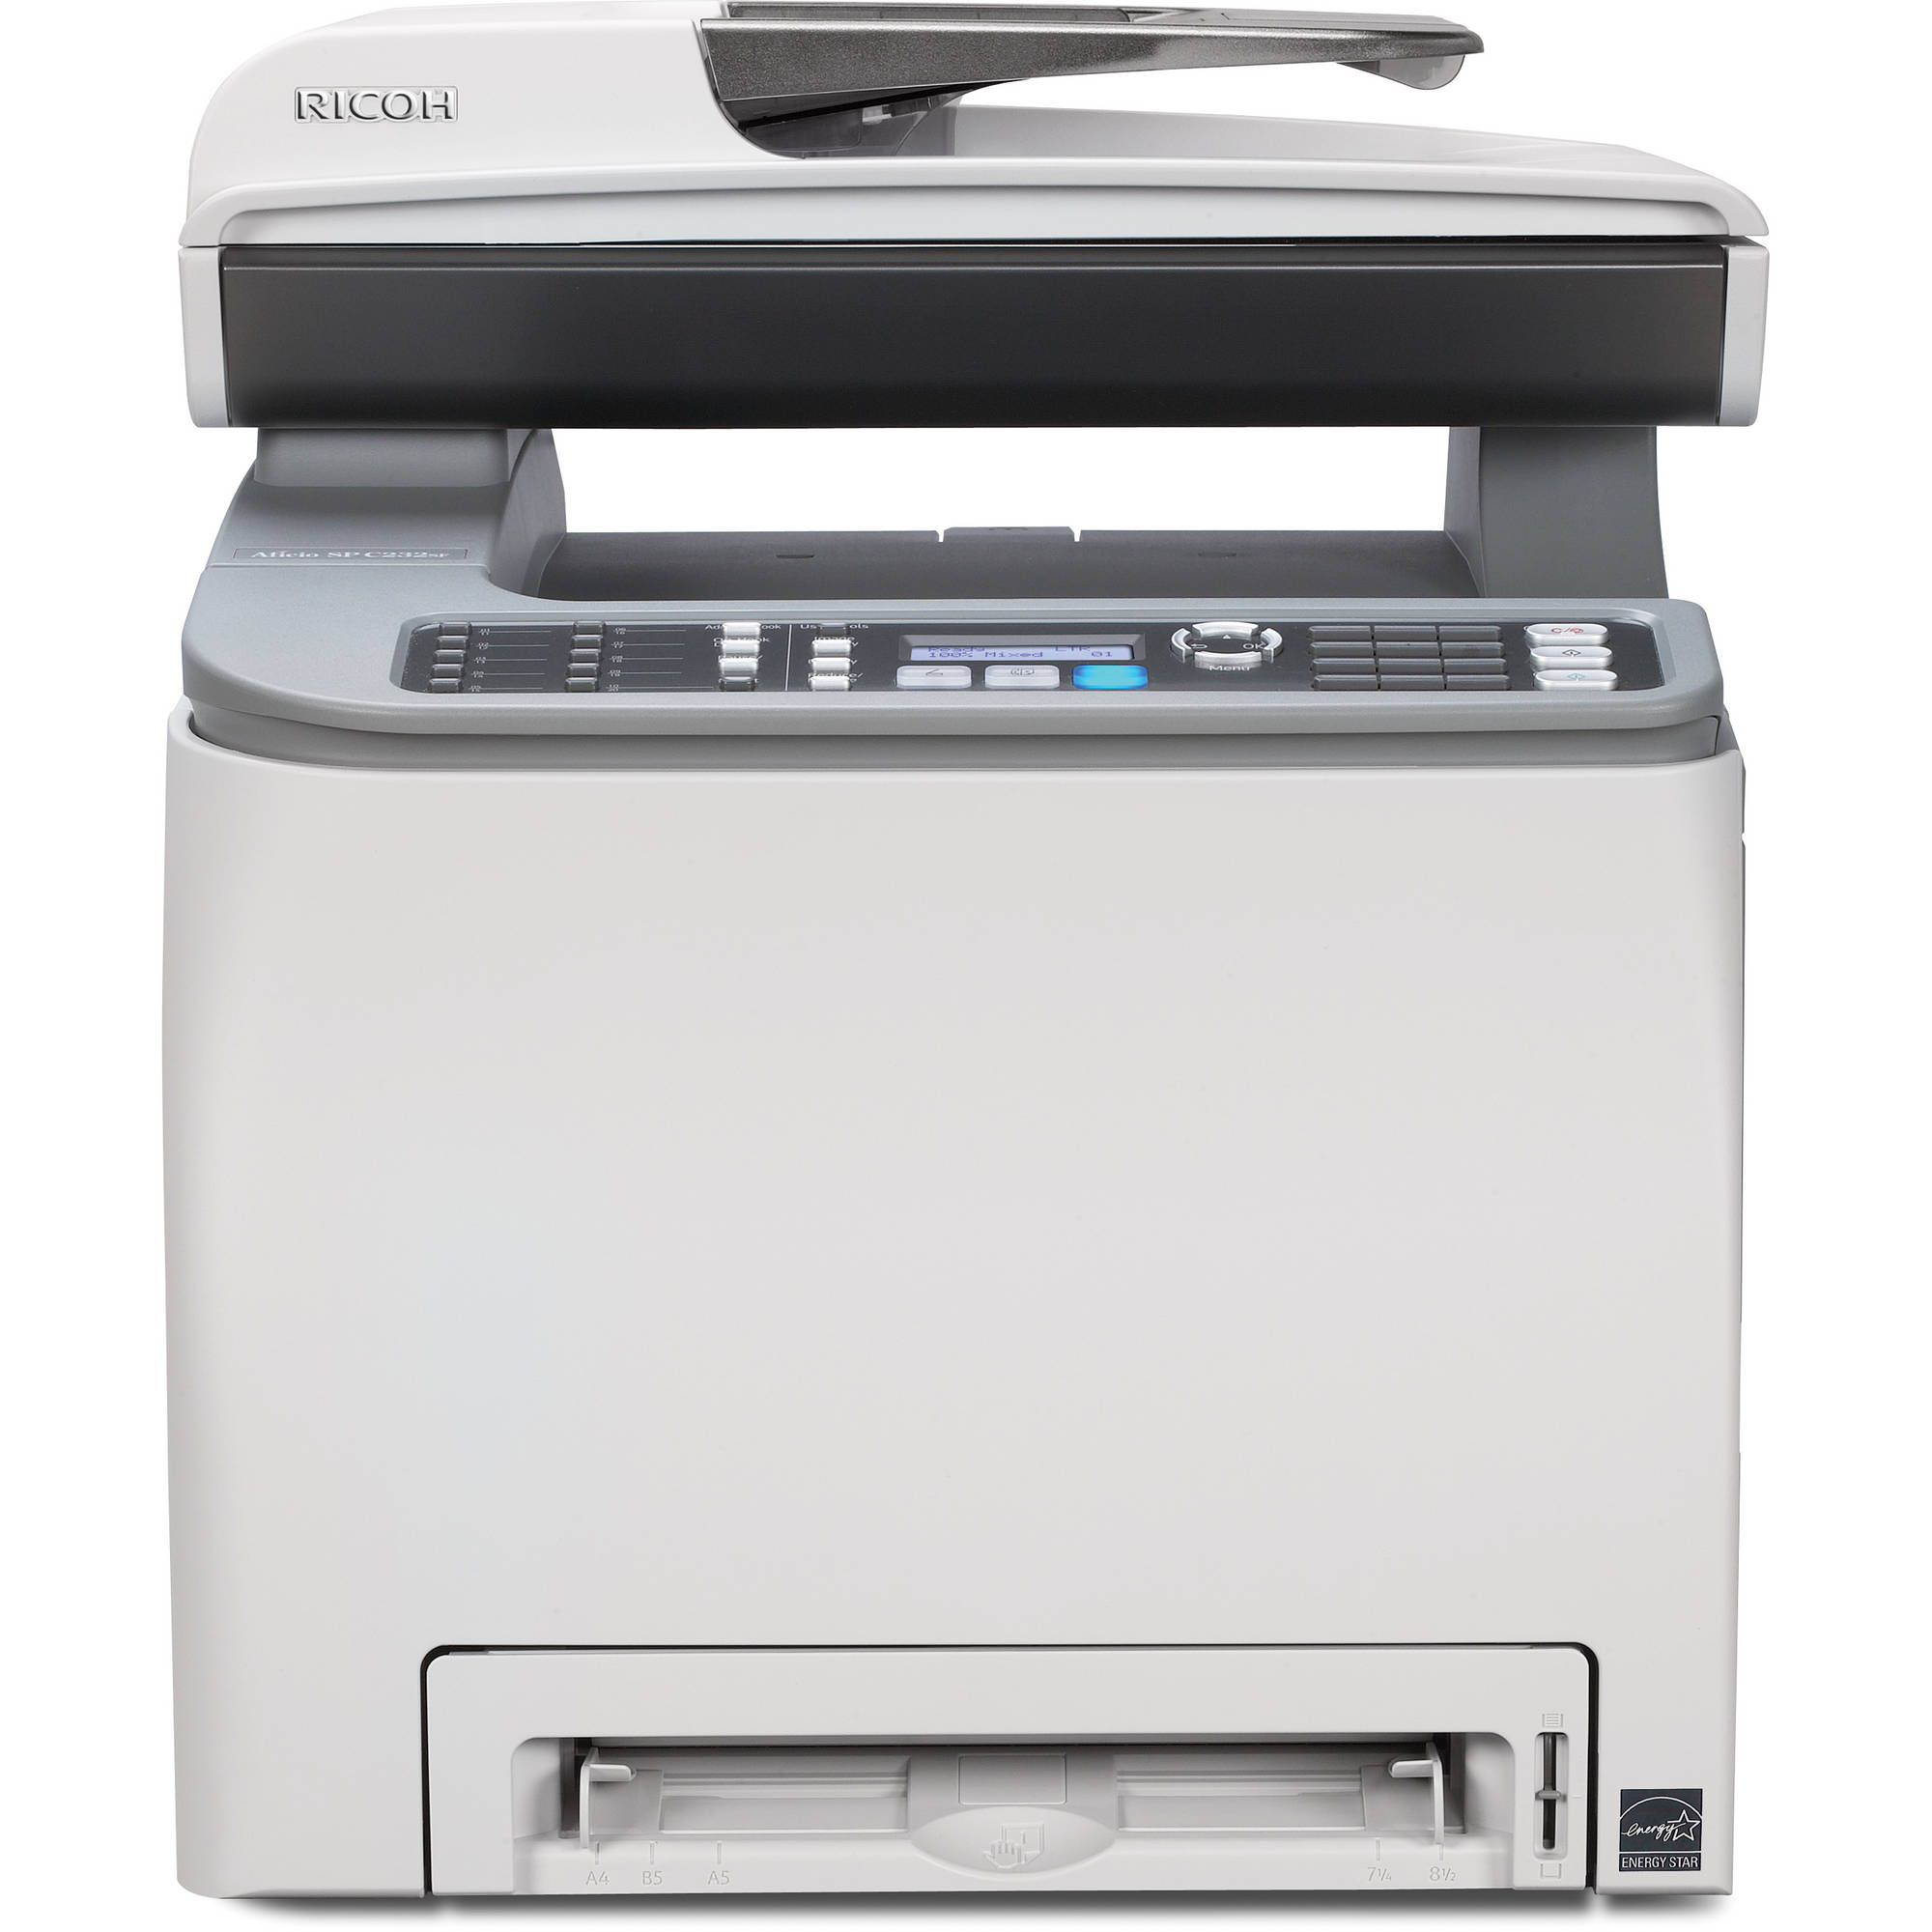 Ricoh Aficio SP C232SF Color Laser Multifunction Printer